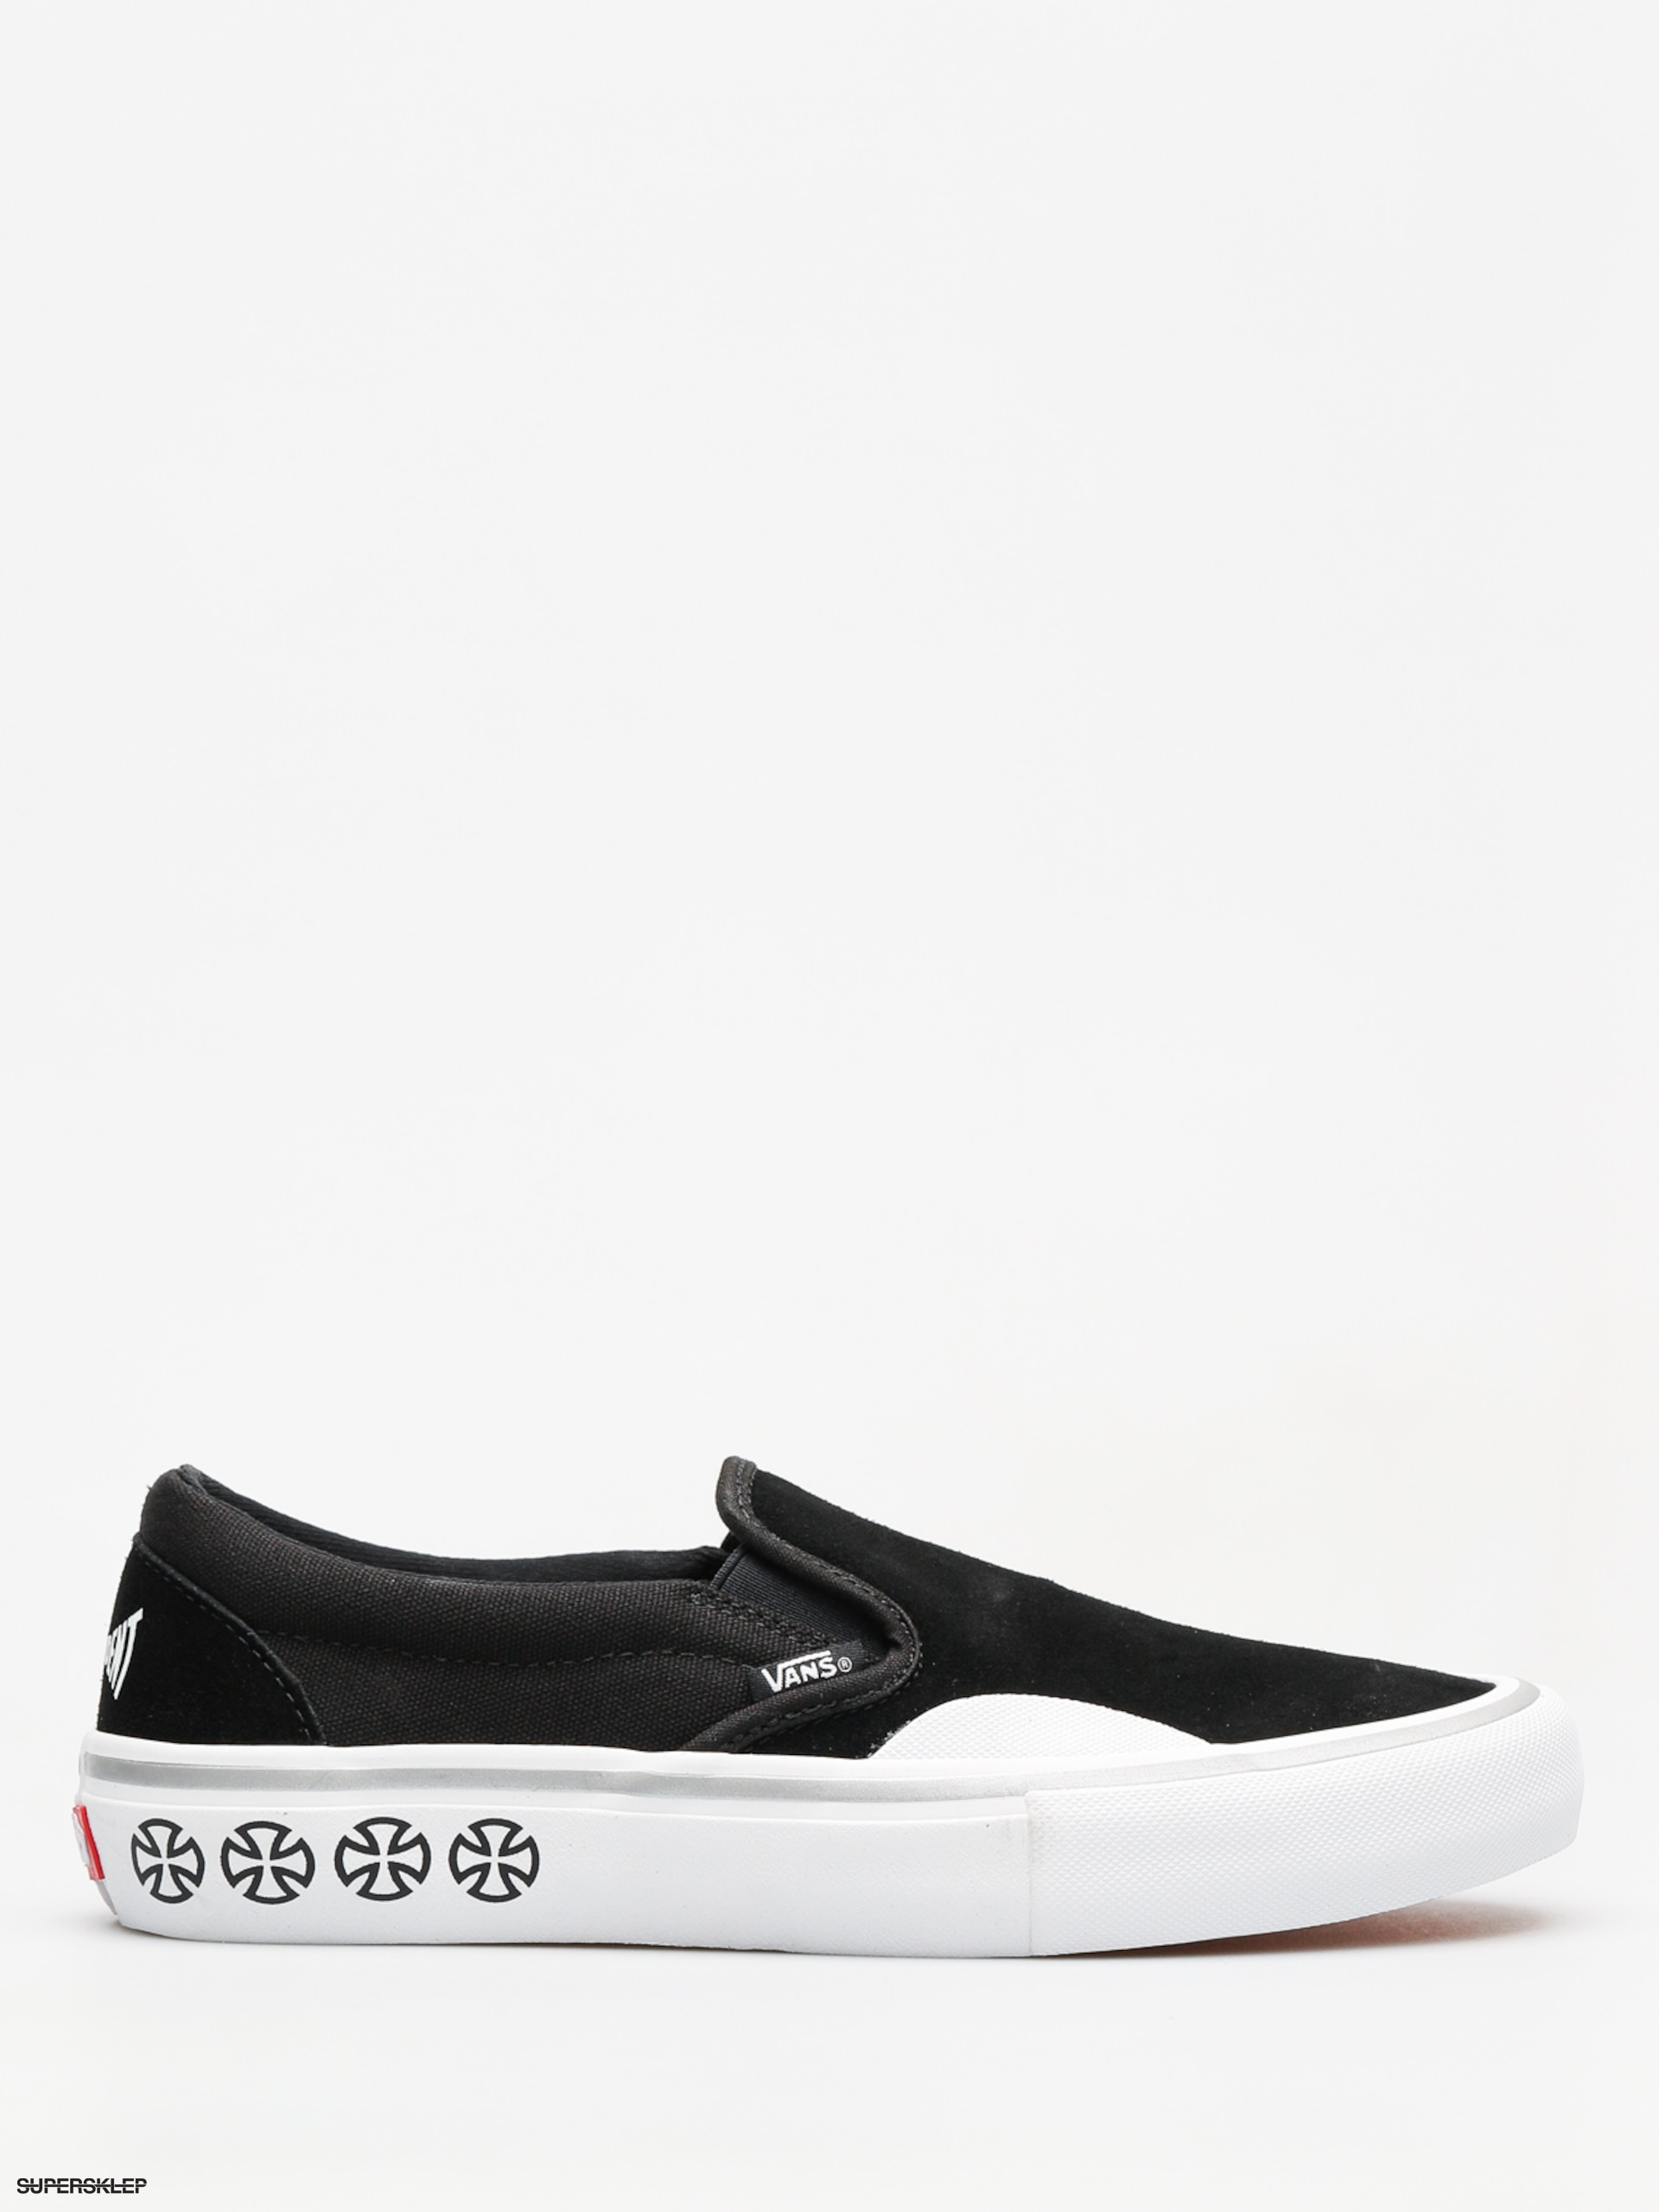 c9bcb2bec6 Topánky Vans x Independent Slip On Pro (independent black white)